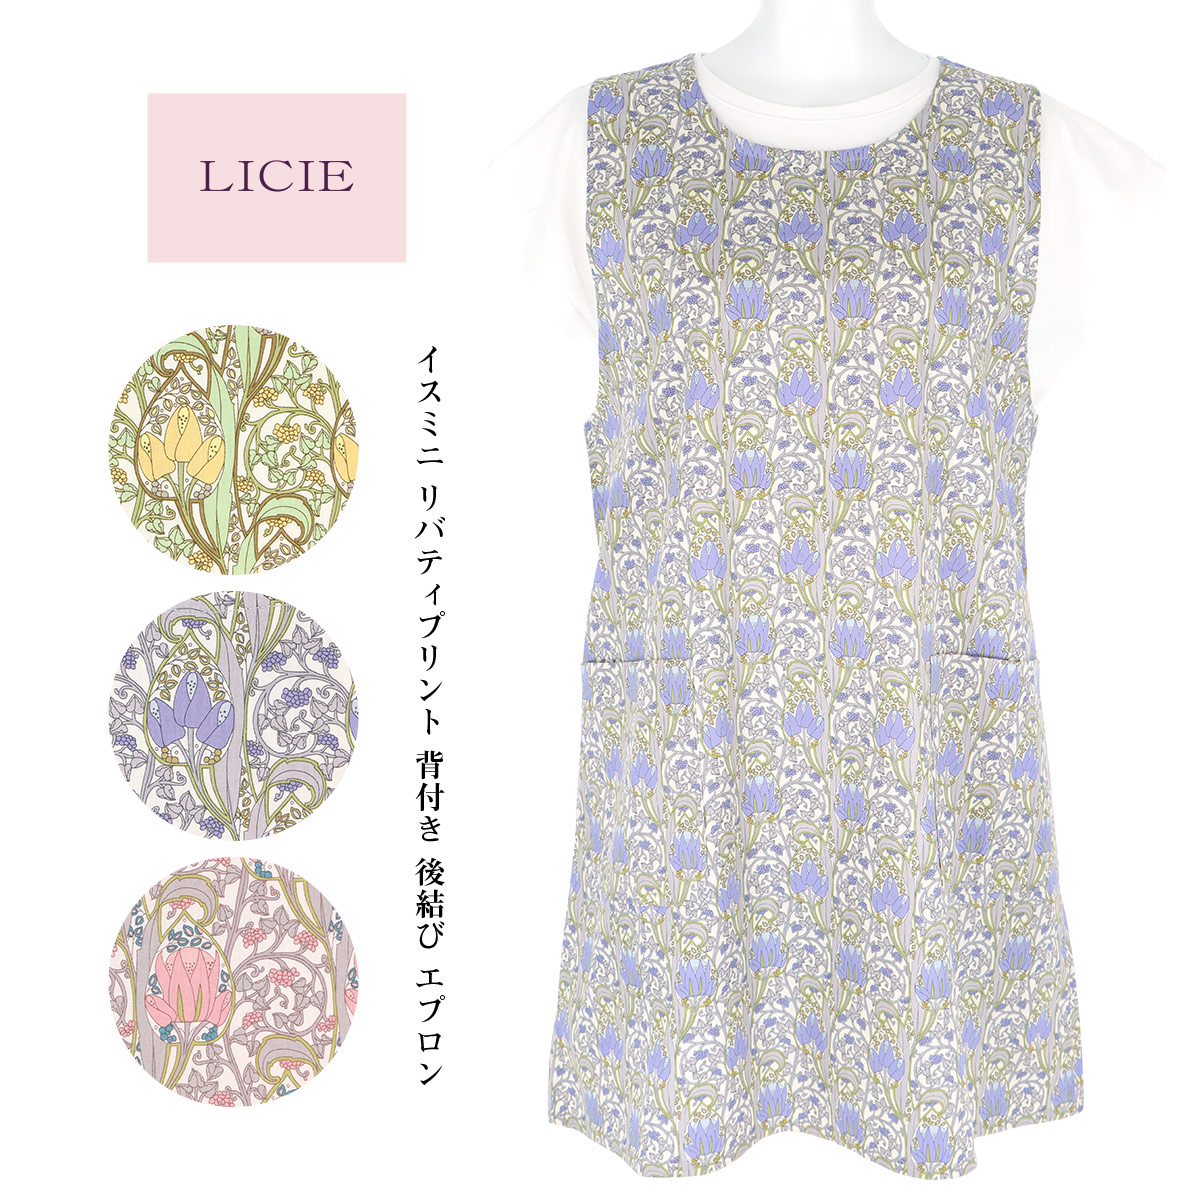 LICIE リッシー LIBERTY リバティプリント イスミニ 綿100% 後結び 背付き エプロン 70551101【ゆうパケットお取り扱い不可】